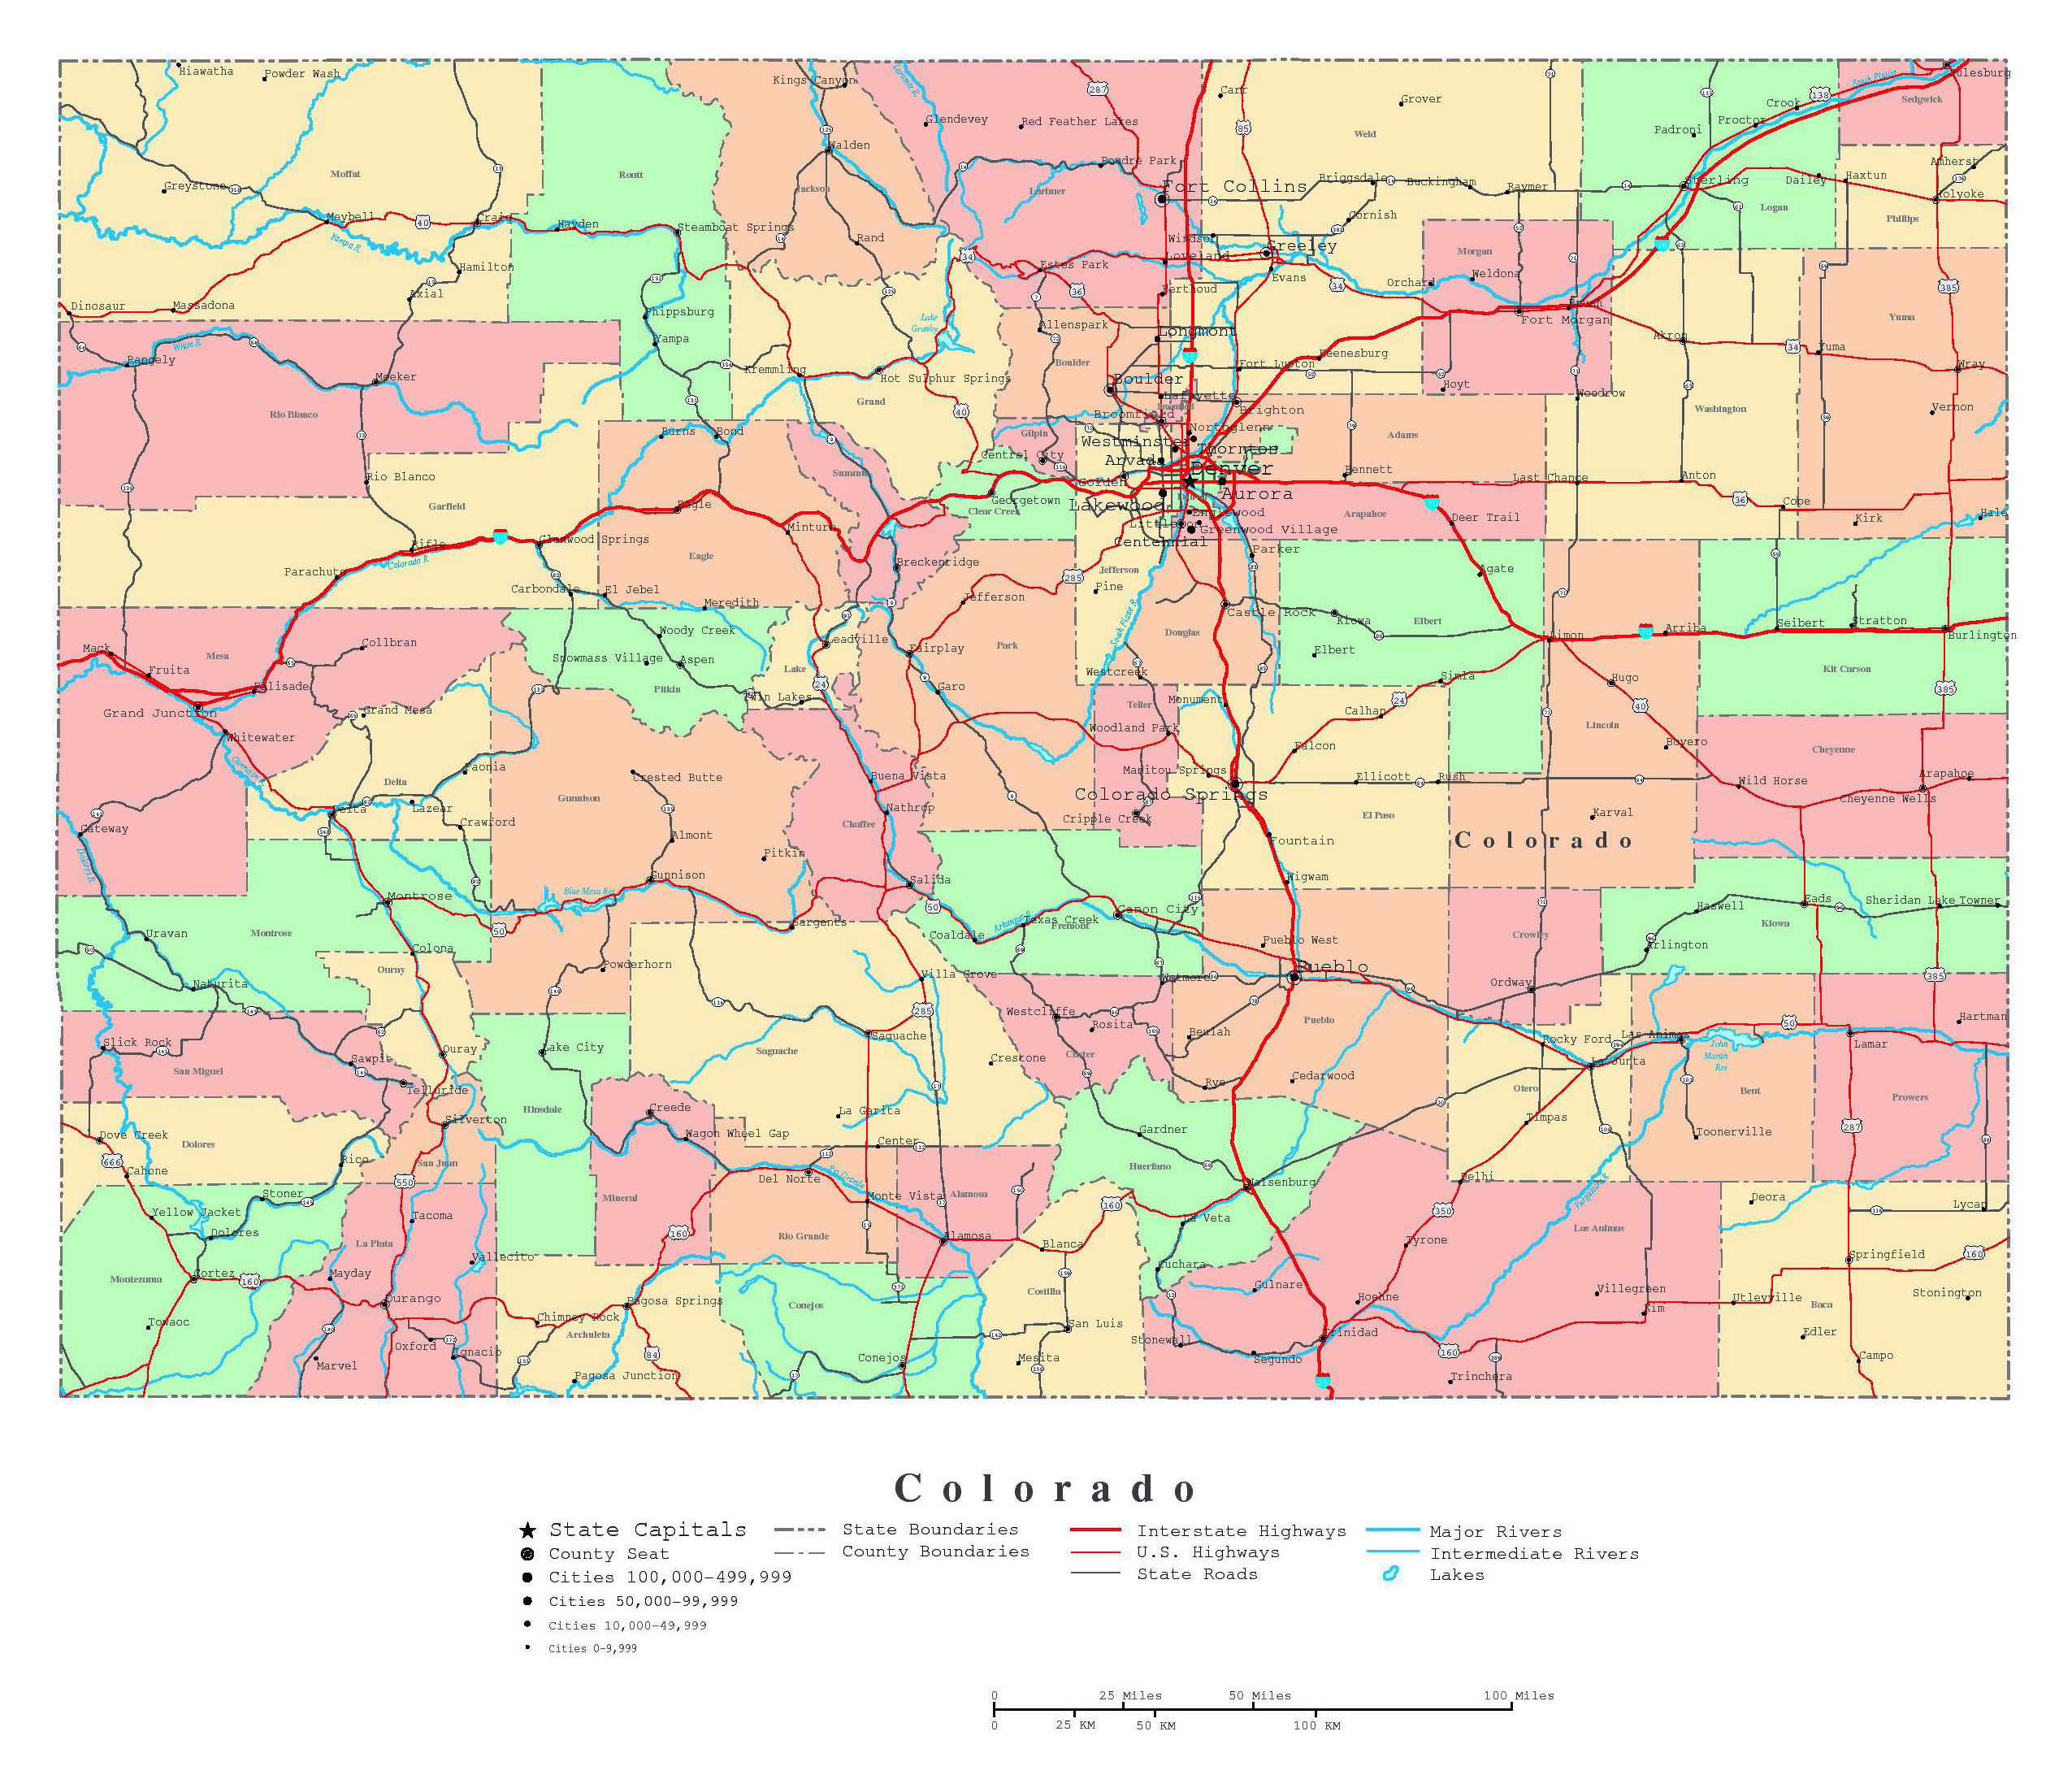 Large Detailed Administrative Map Of Colorado State With Roads - State map of colorado with cities